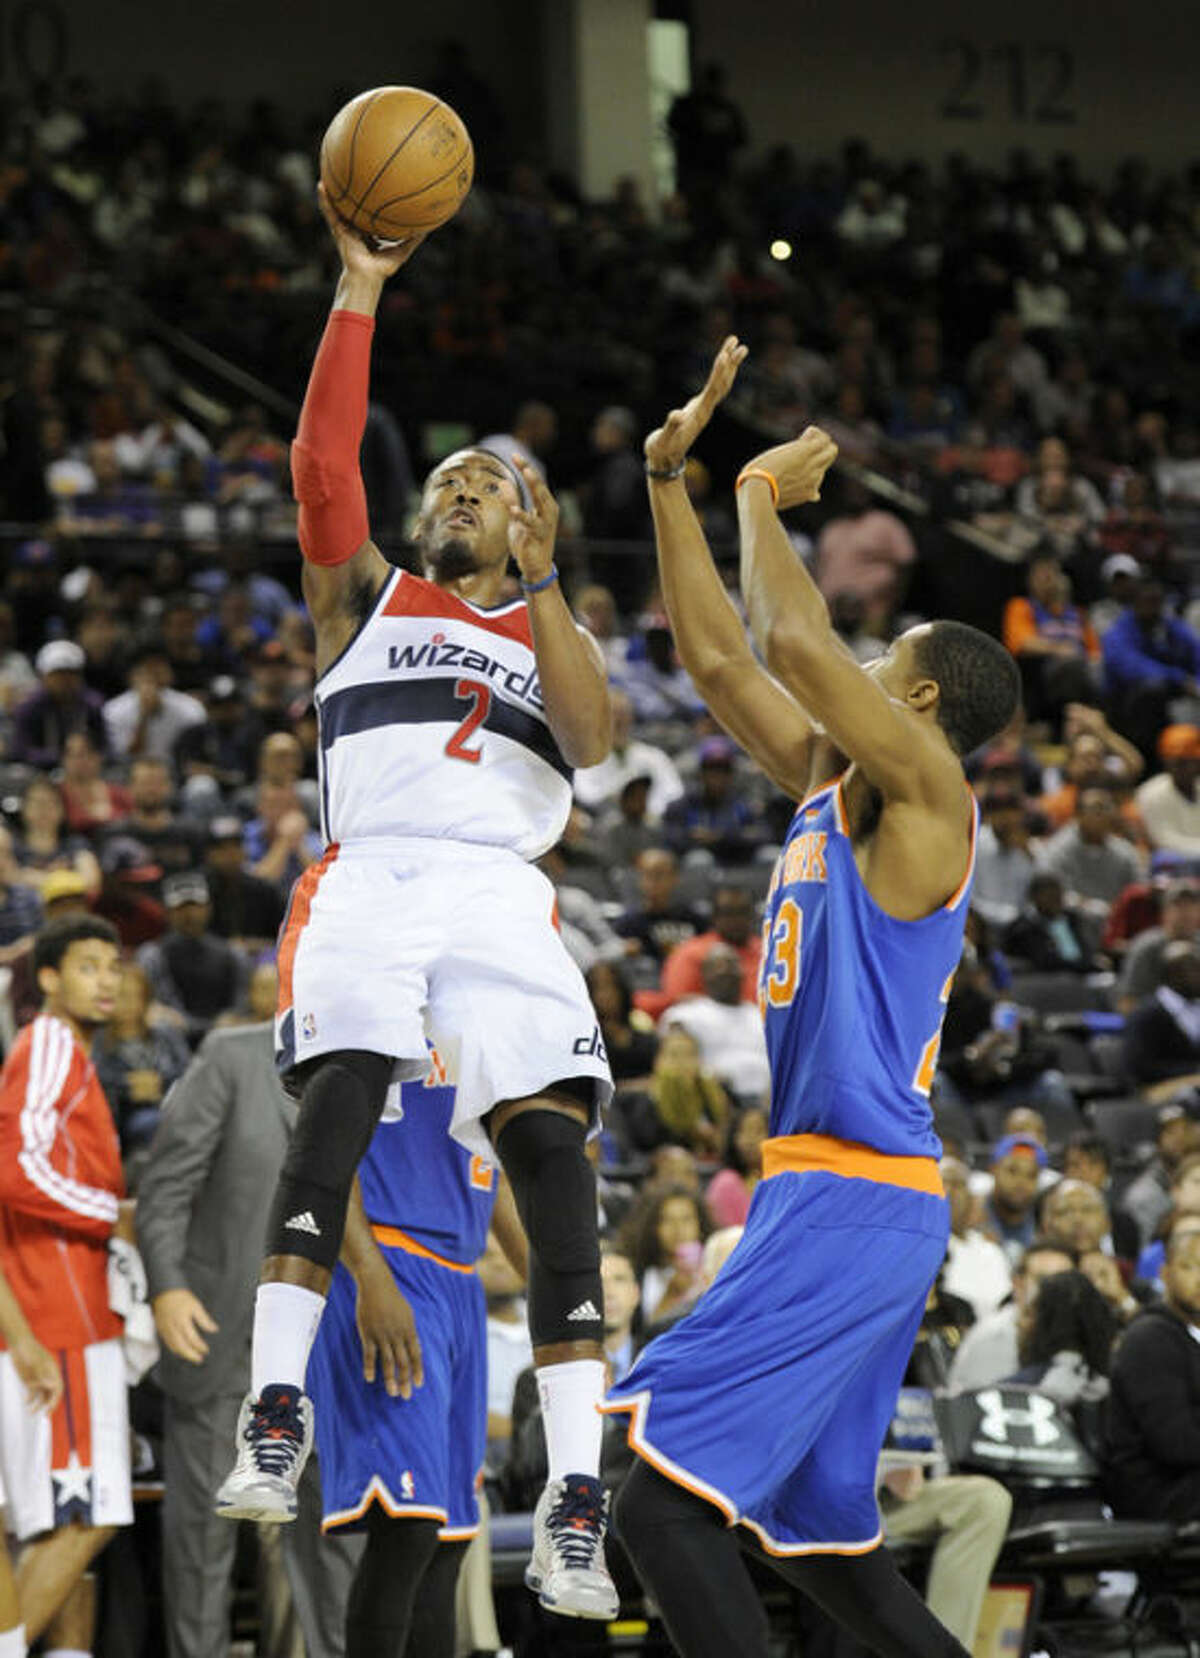 Washington Wizards point guard John Wall (2) takes a shot against New York Knicks shooting guard Toure' Murry (23) during the first half of an NBA preseason basketball game, Thursday, Oct. 17, 2013, in Baltimore. (AP Photo/Nick Wass)